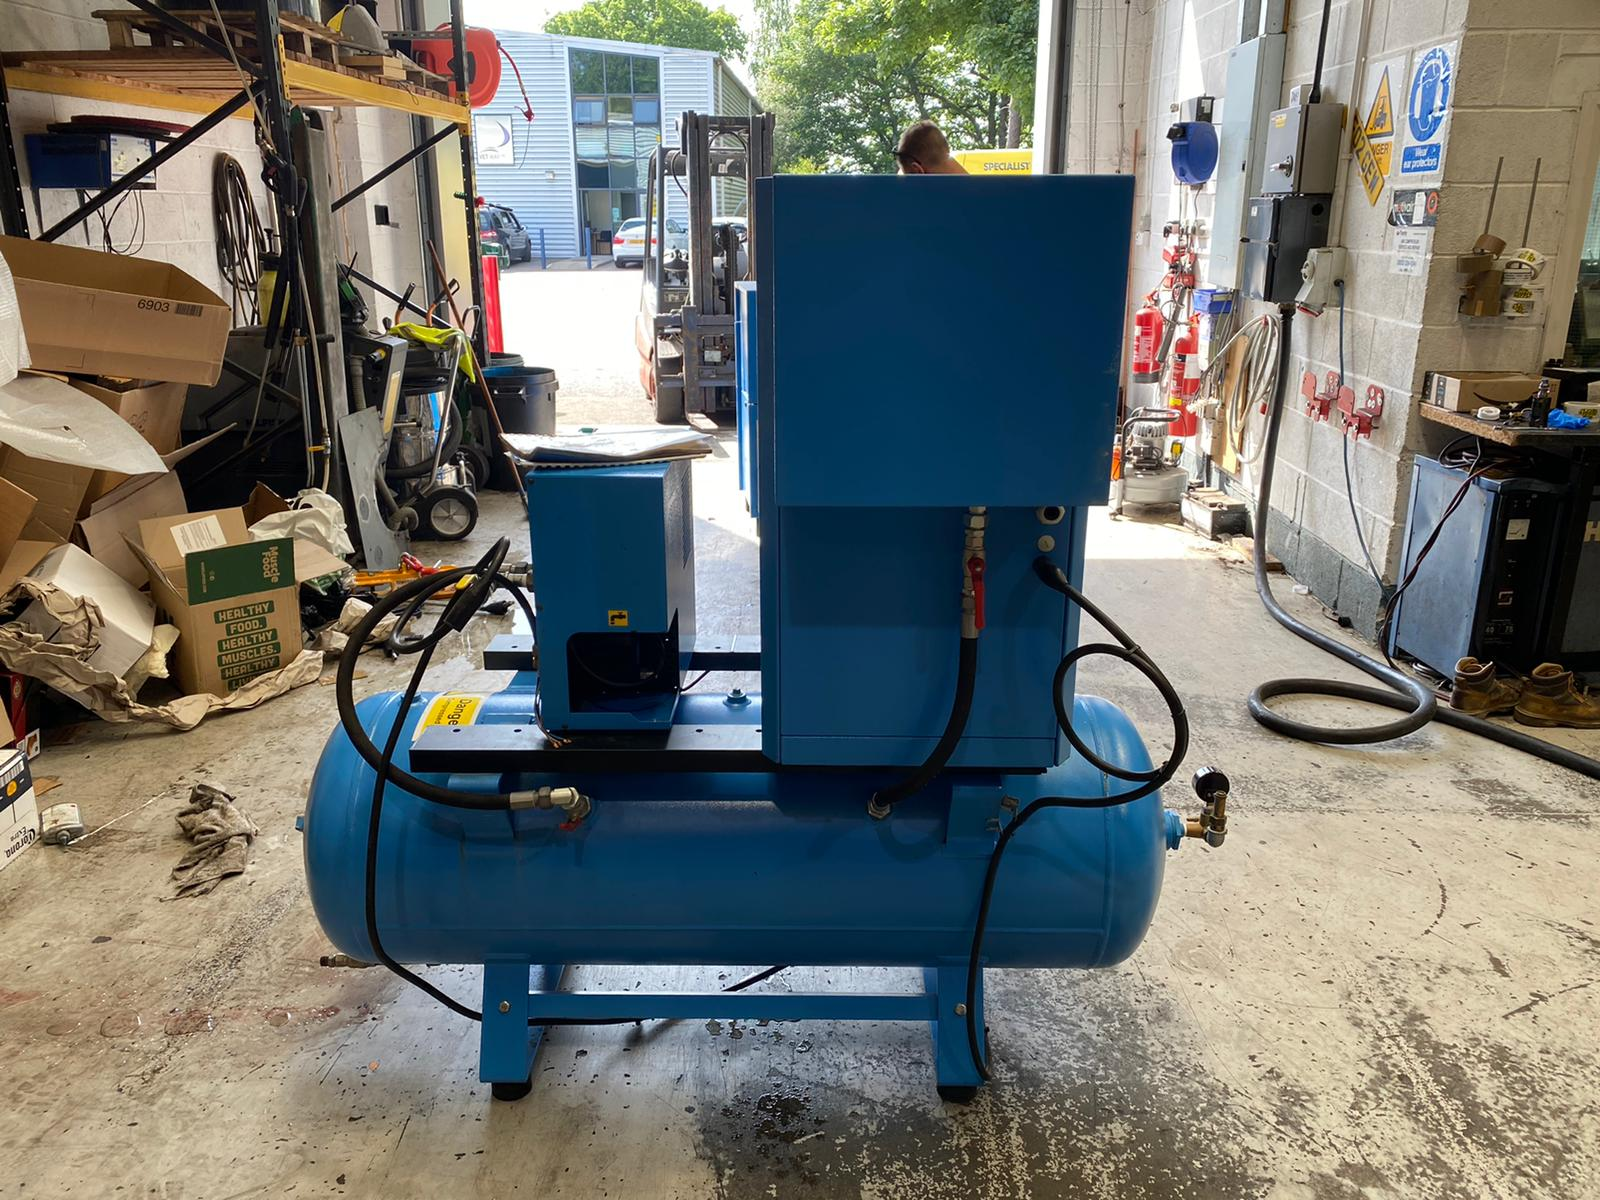 BOGE C5 DR 2016 4Kw Air Screw Compressor with Tank and Dryer LOW HOURS